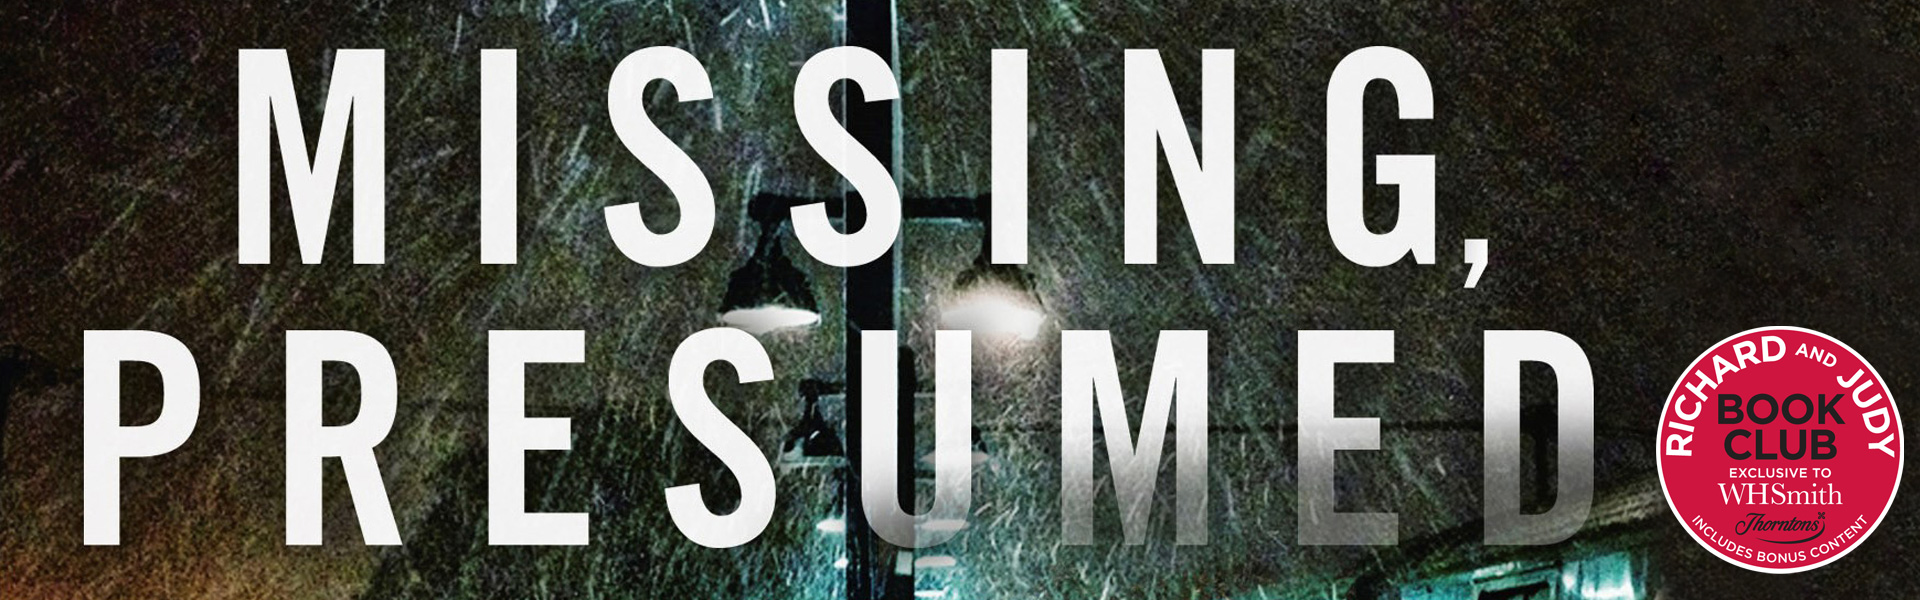 Read an Extract from Missing, Presumed by Susie Steiner